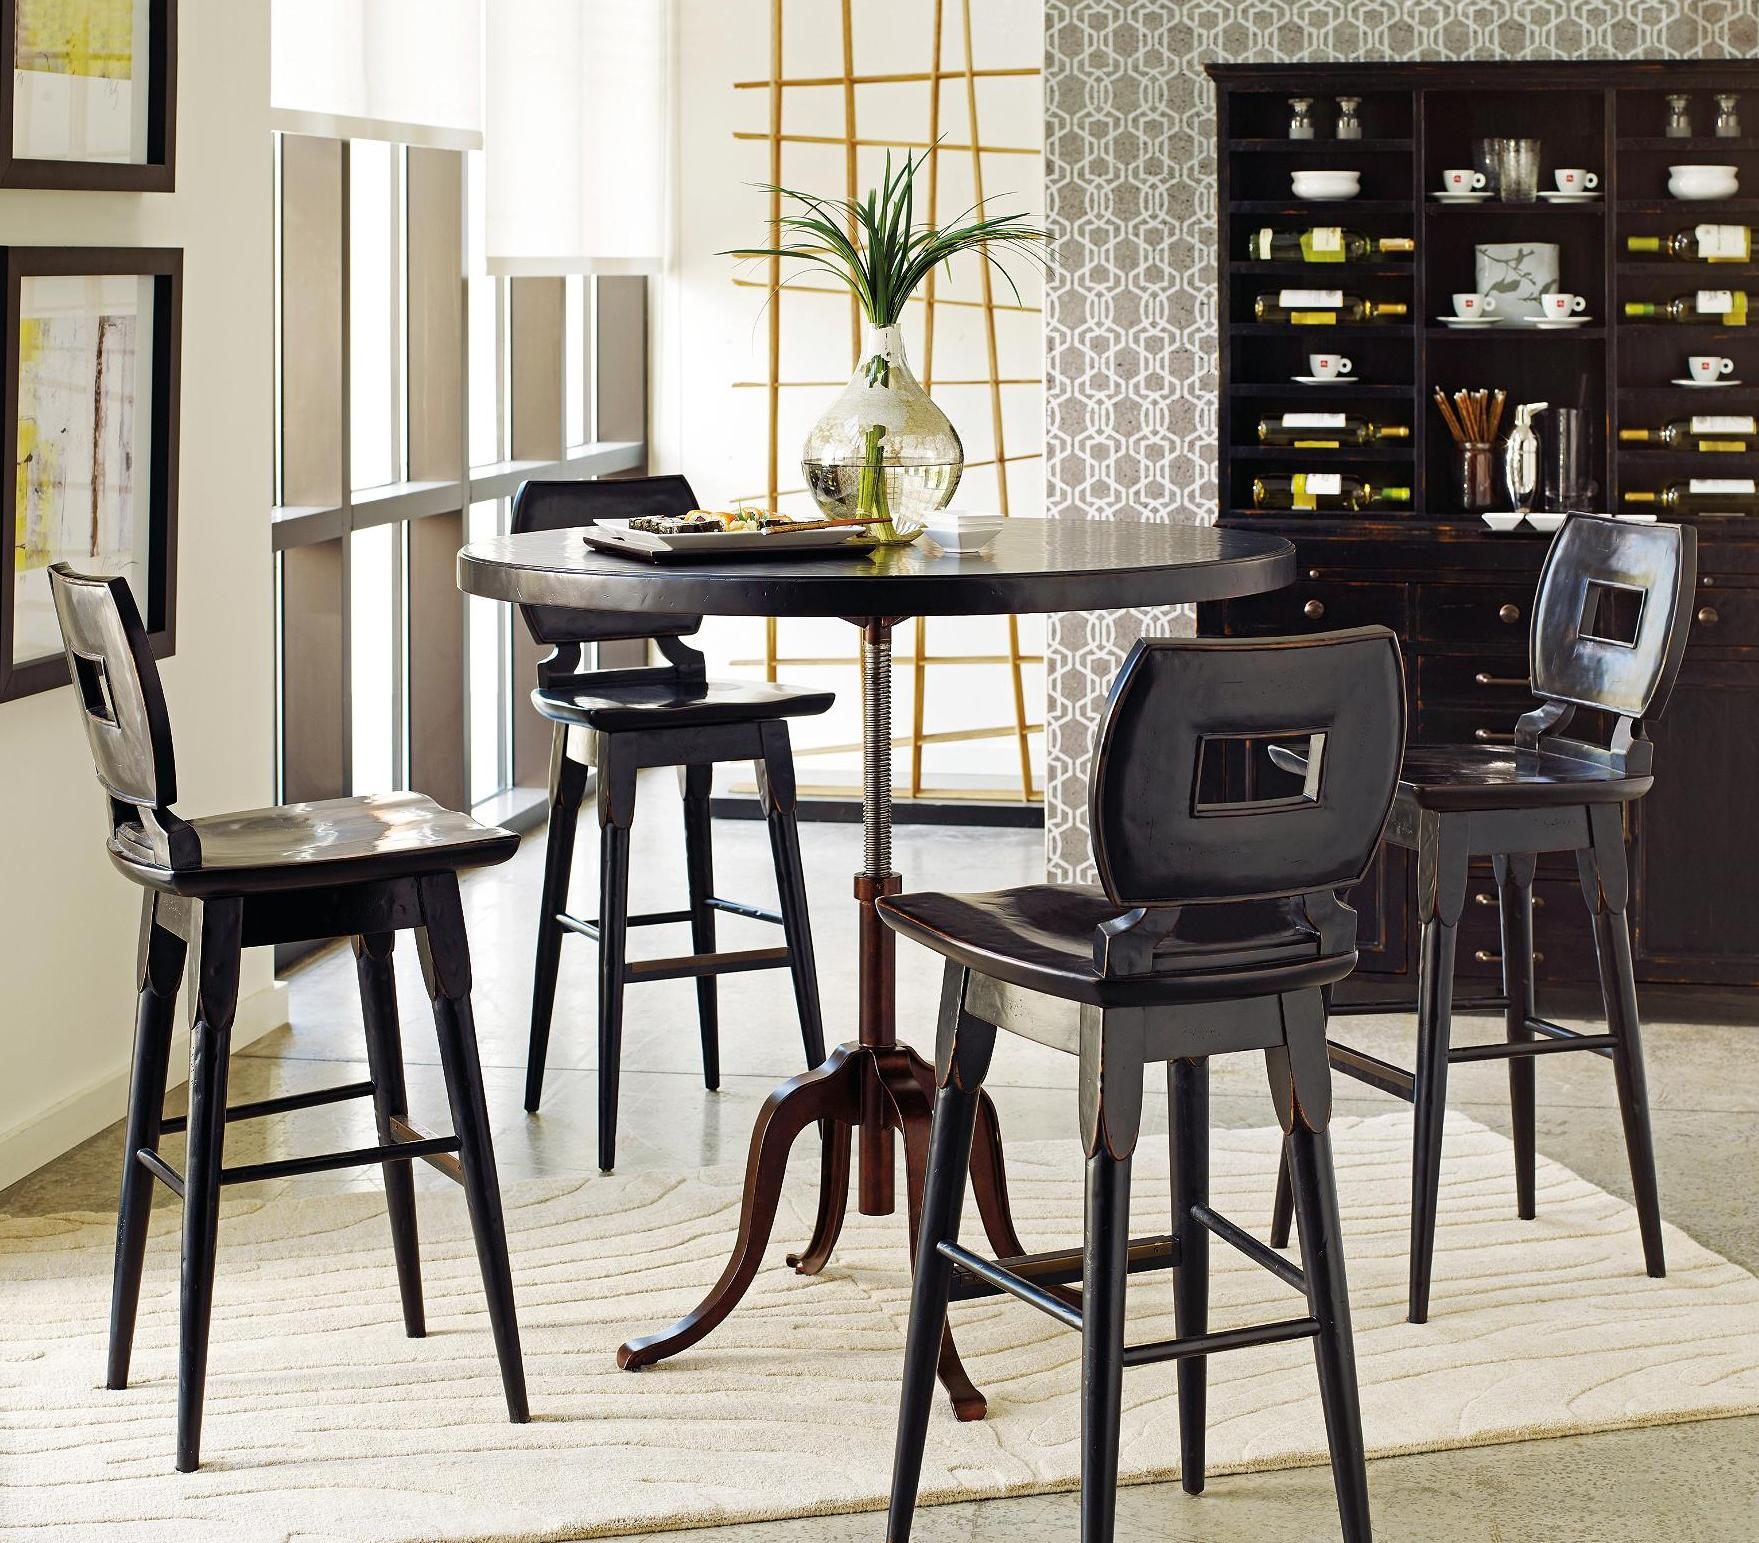 Stanley Furniture The Classic Portfolio Artisan 5Pc Adjustable Height Table and Bar Stools - Item Number: 135-81-230+130+4x73